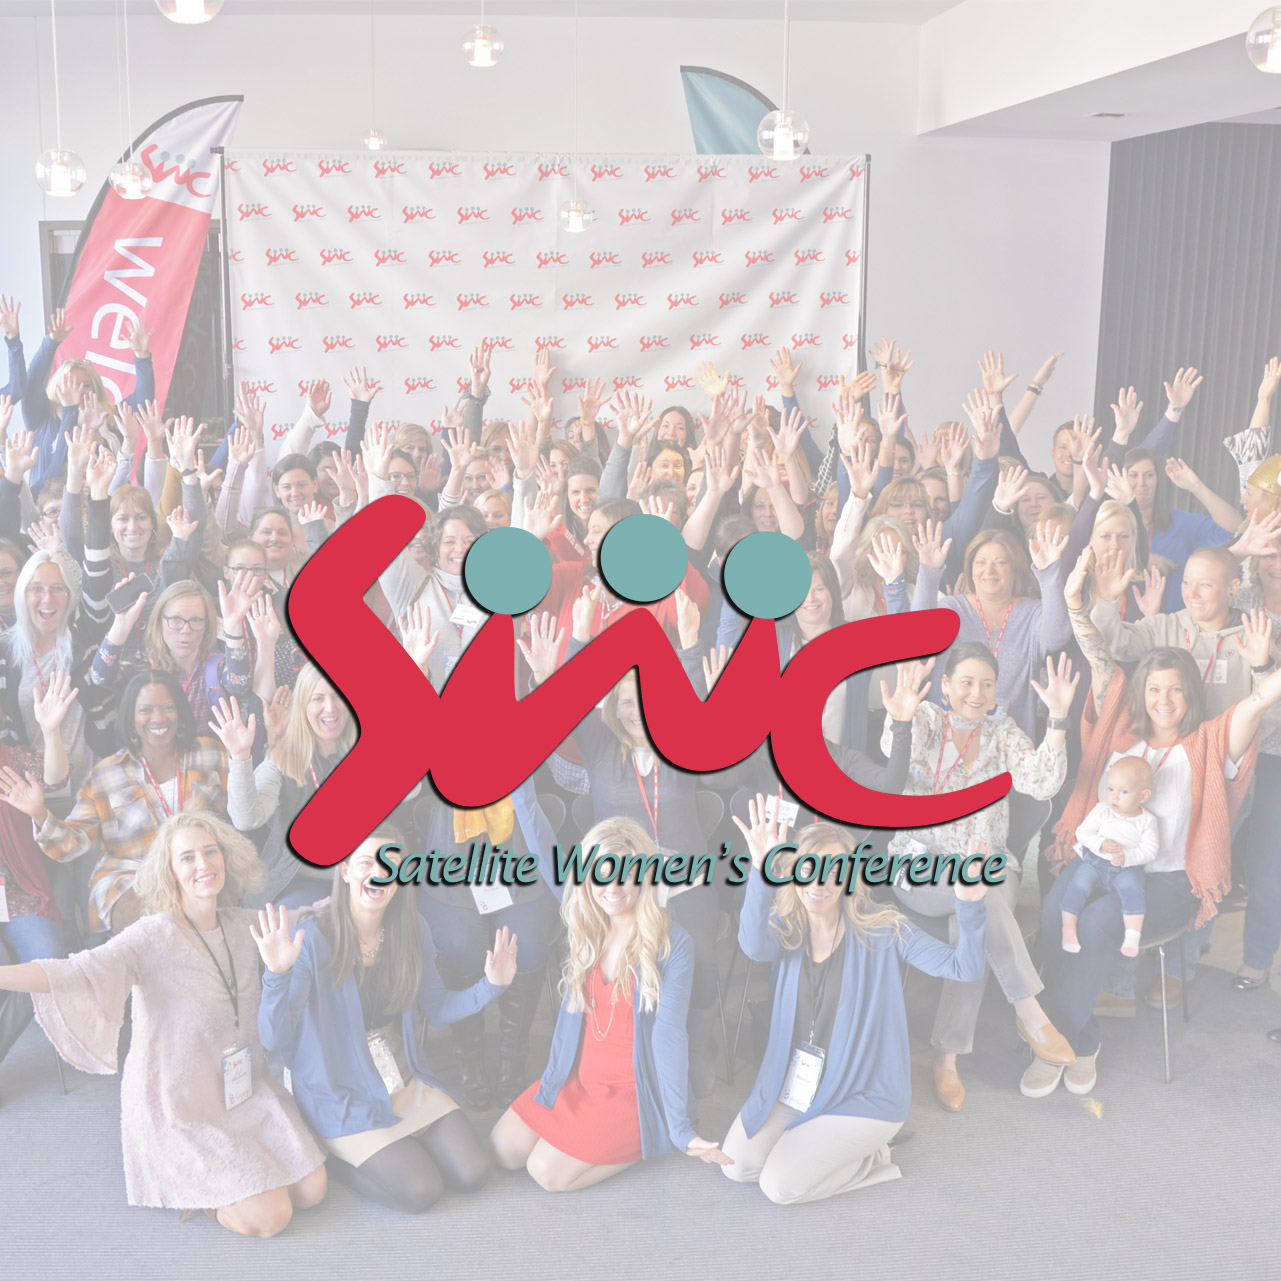 2018 Satellite Women's Conference Featured Image